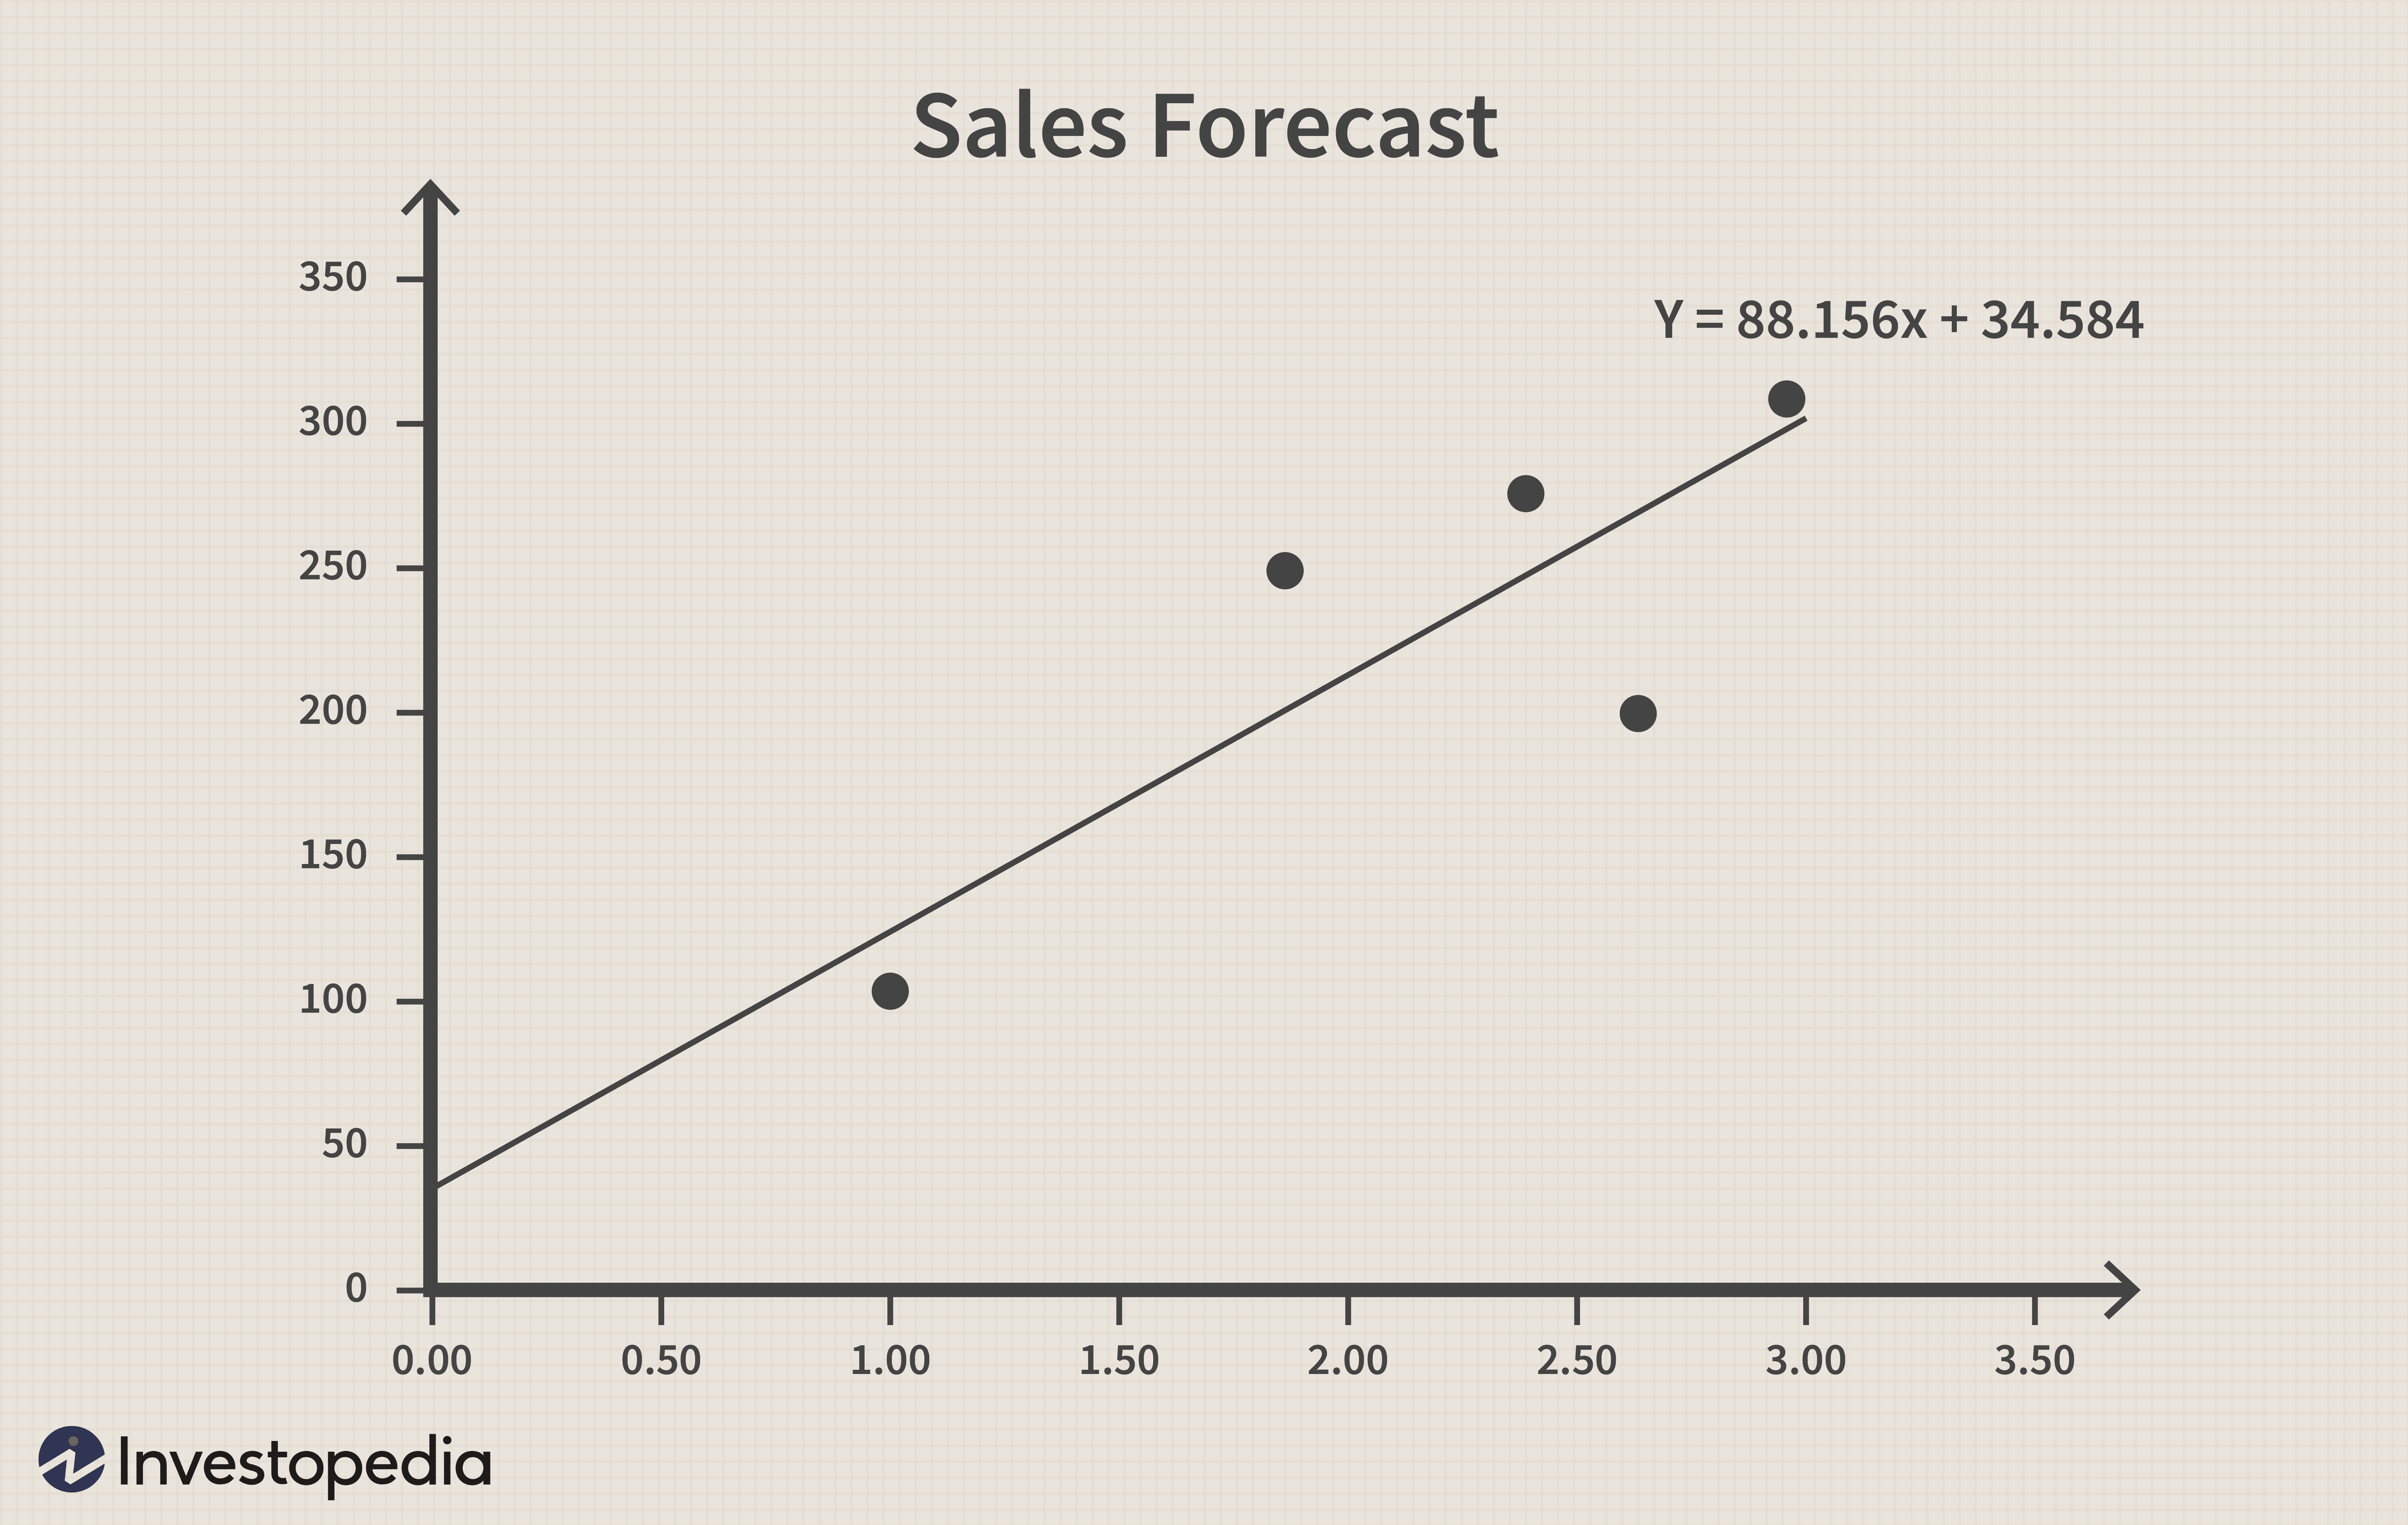 Regression Basics For Business Analysis